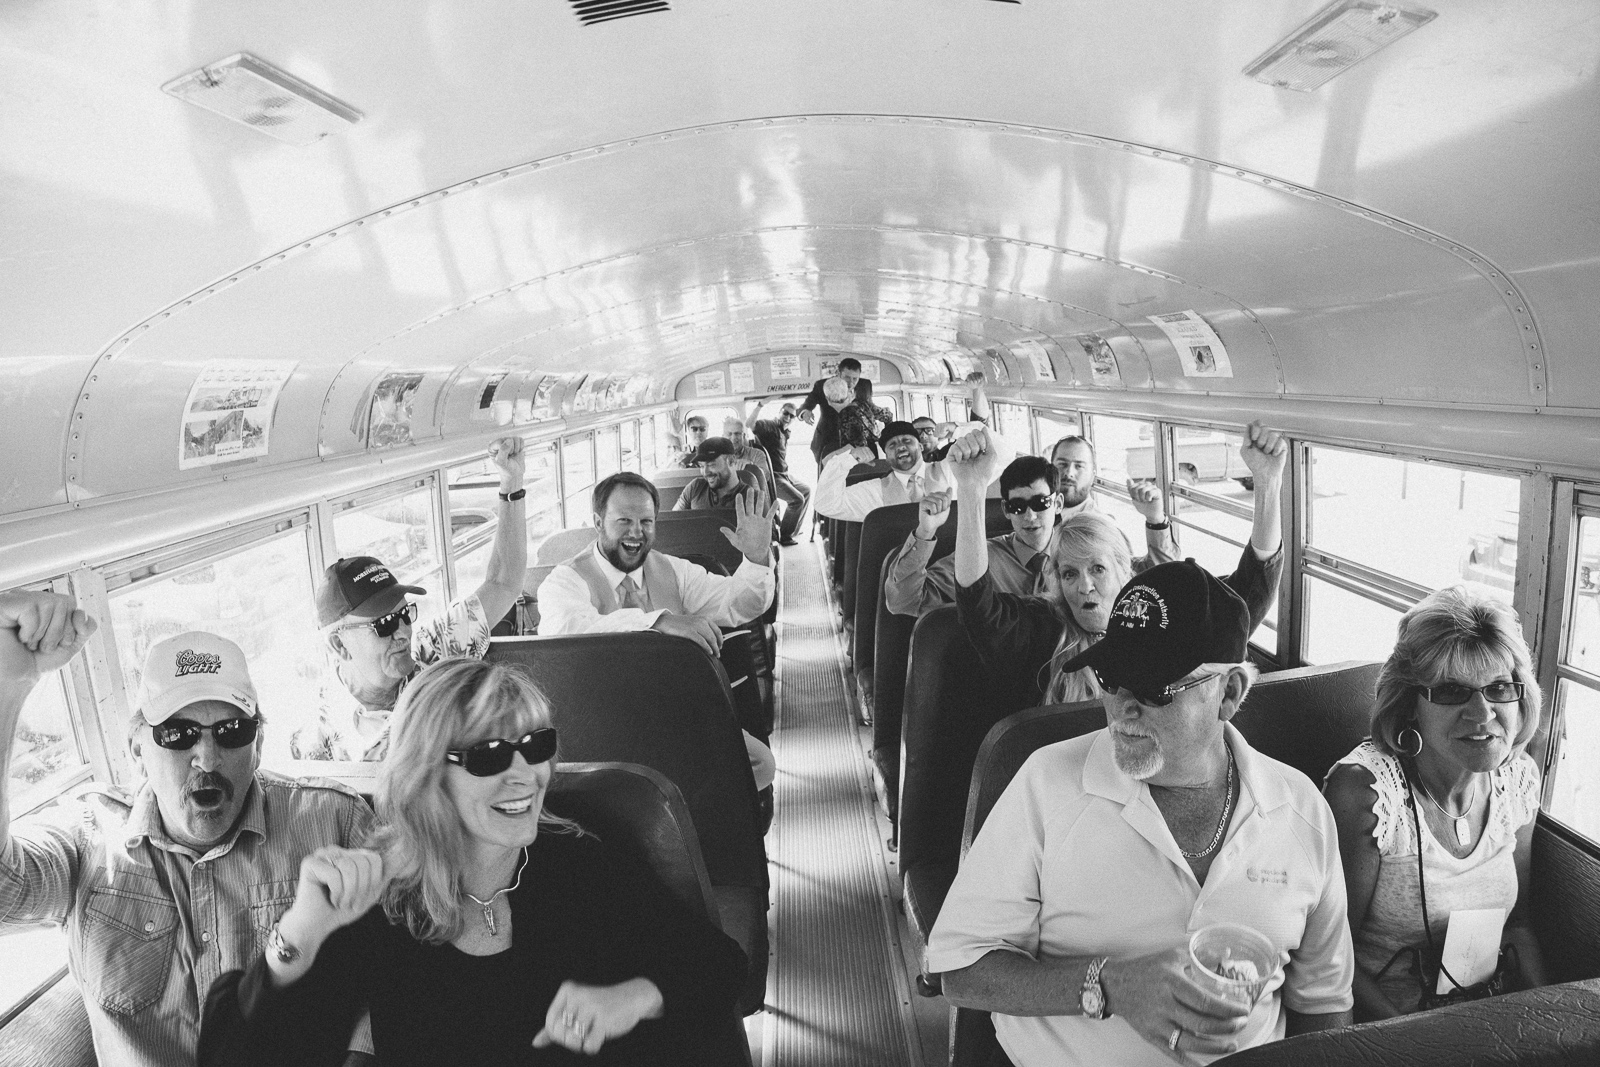 044-wedding-party-bus-fun-photography